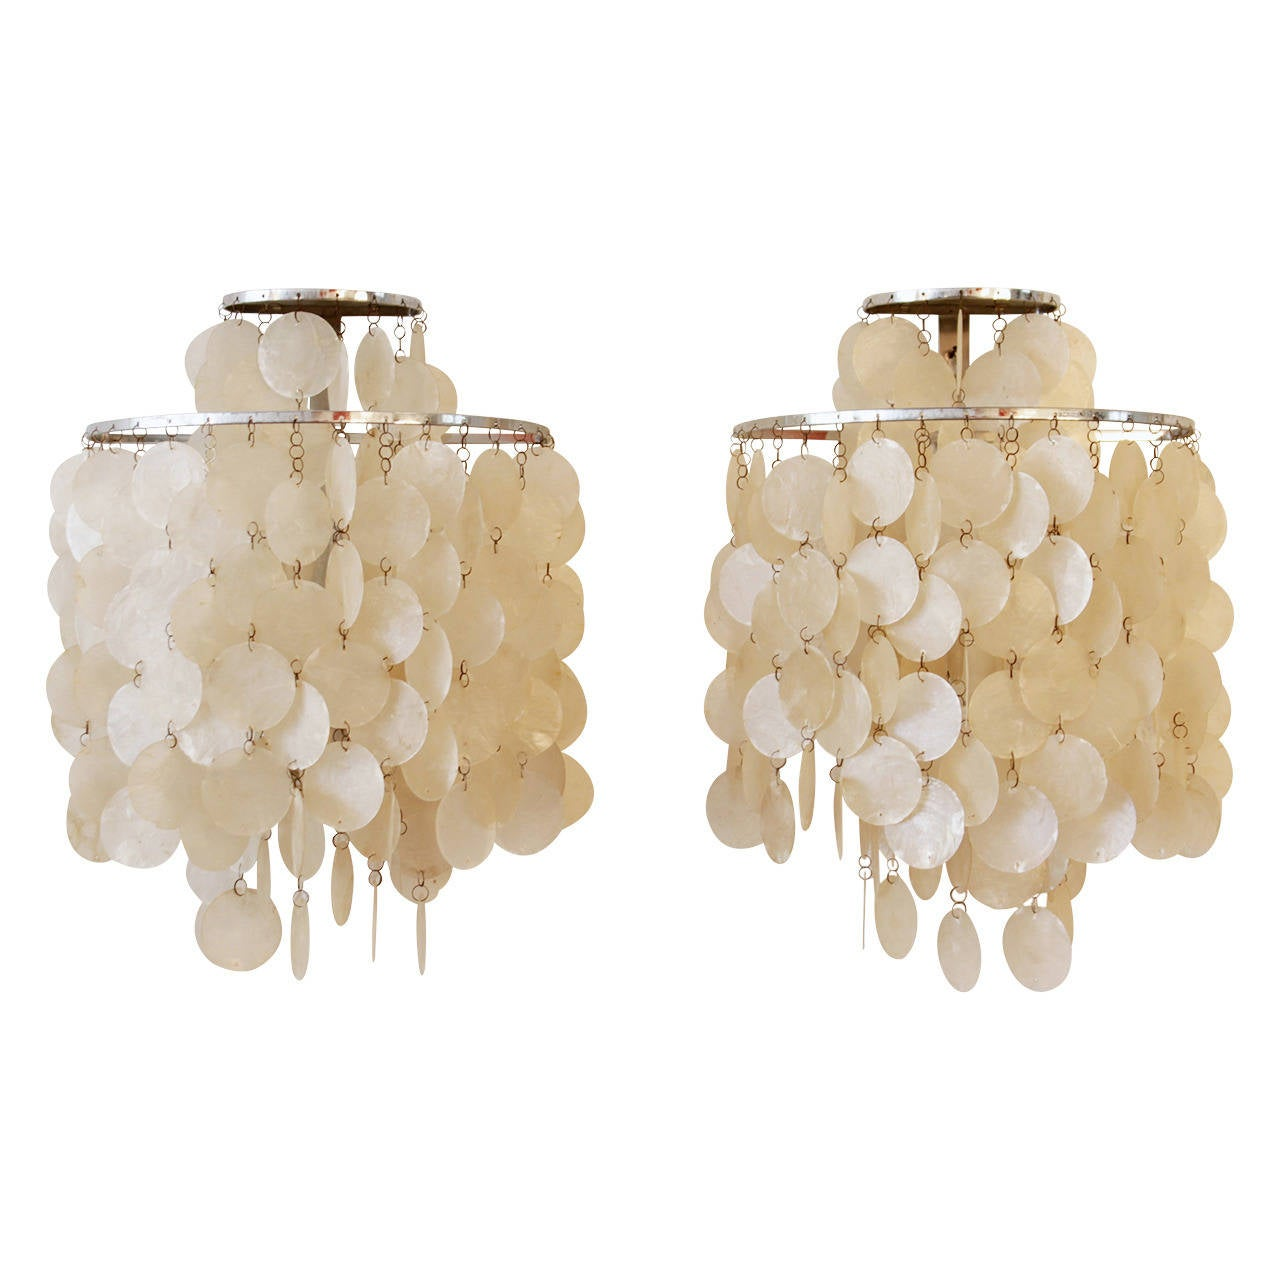 Verner panton pair of shell wall lamps by jlber for sale at 1stdibs verner panton pair of shell wall lamps by jlber for sale mozeypictures Choice Image